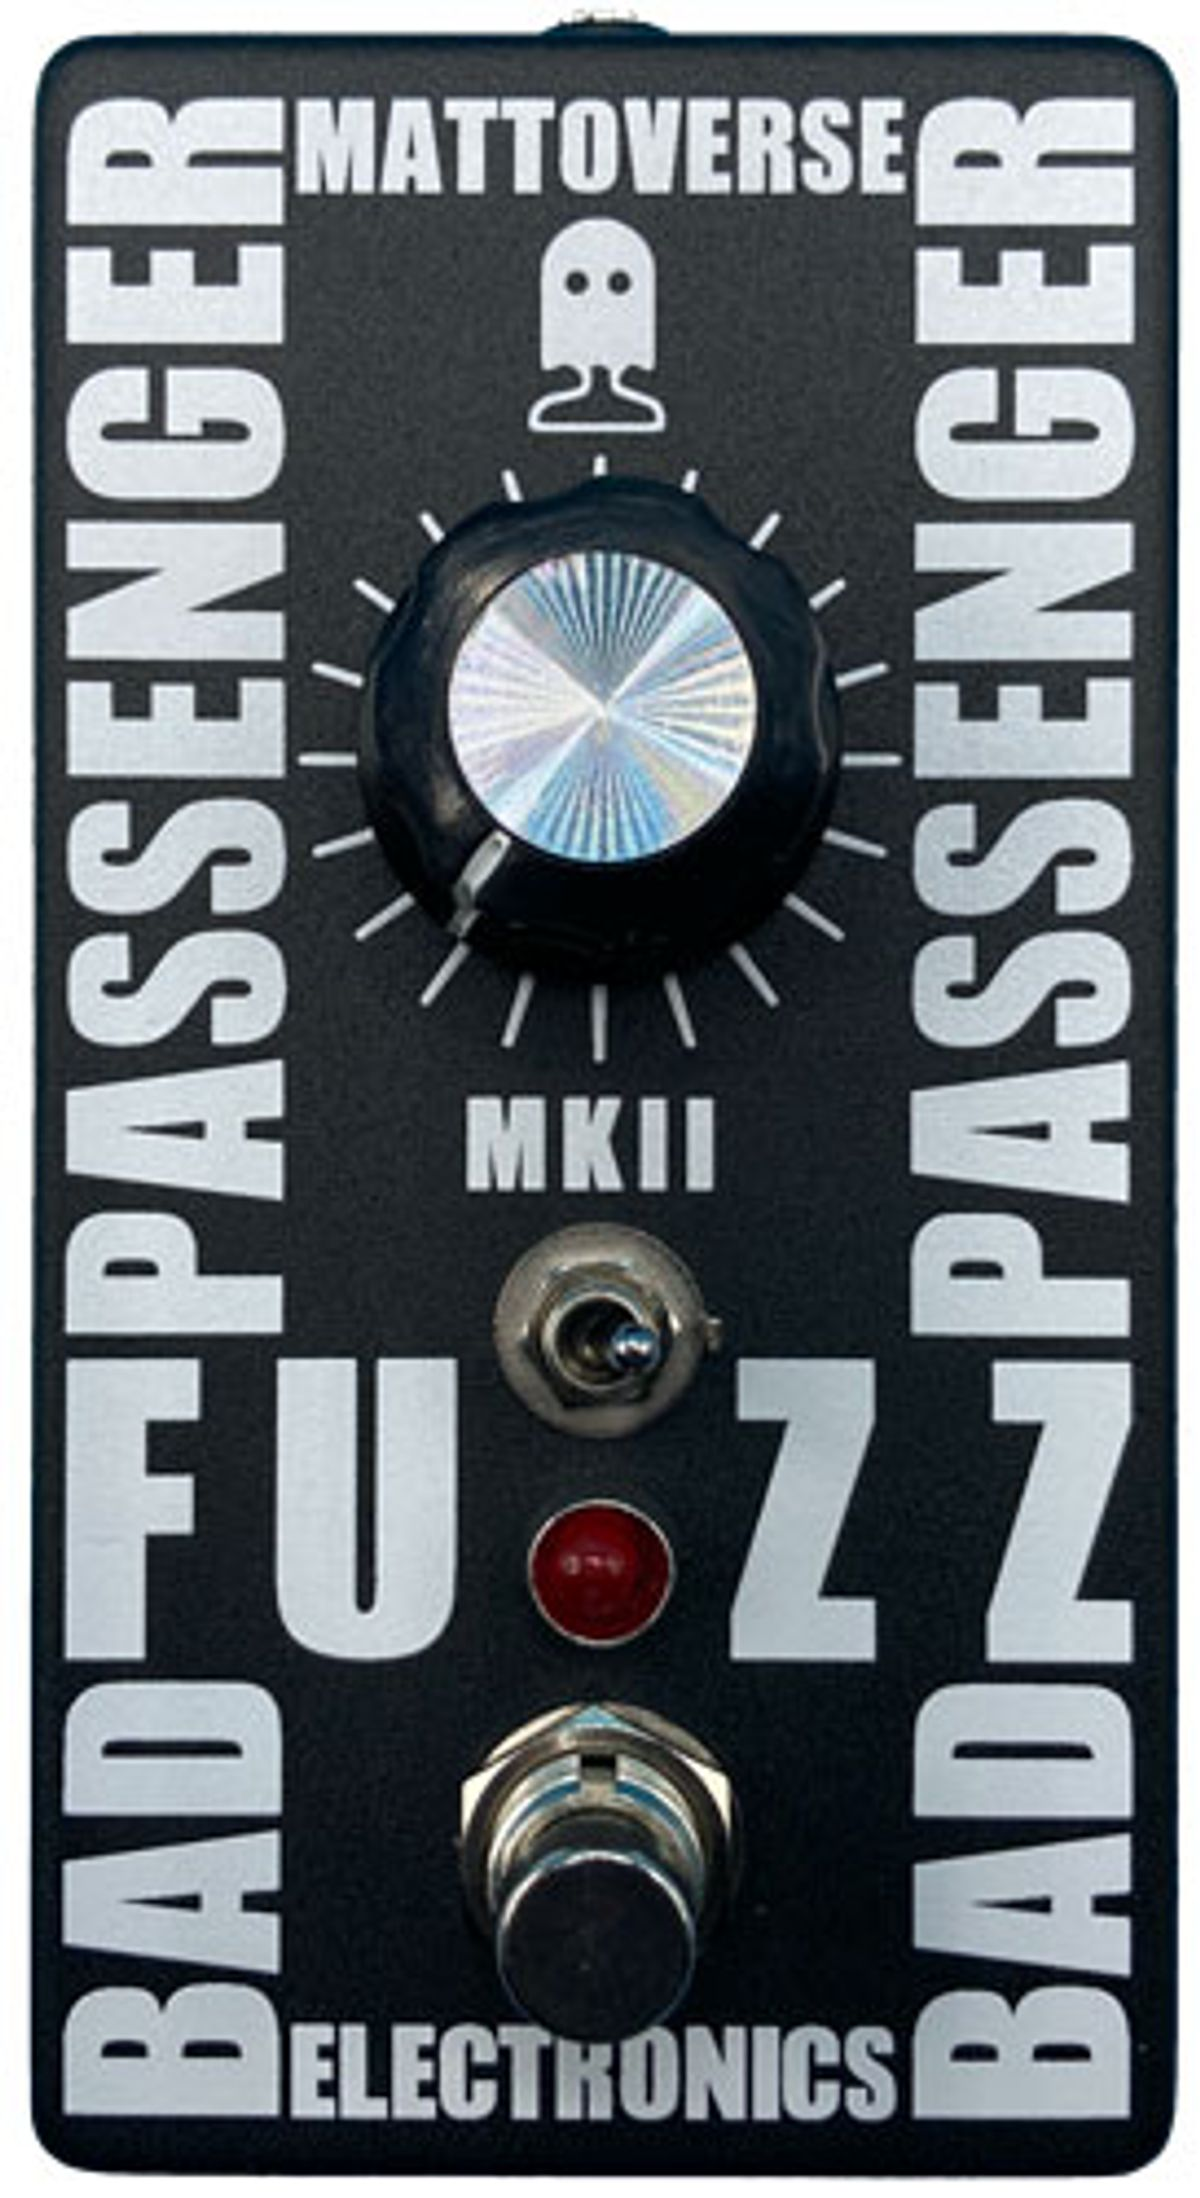 Mattoverse Electronics Releases the Bad Passenger Fuzz MkII